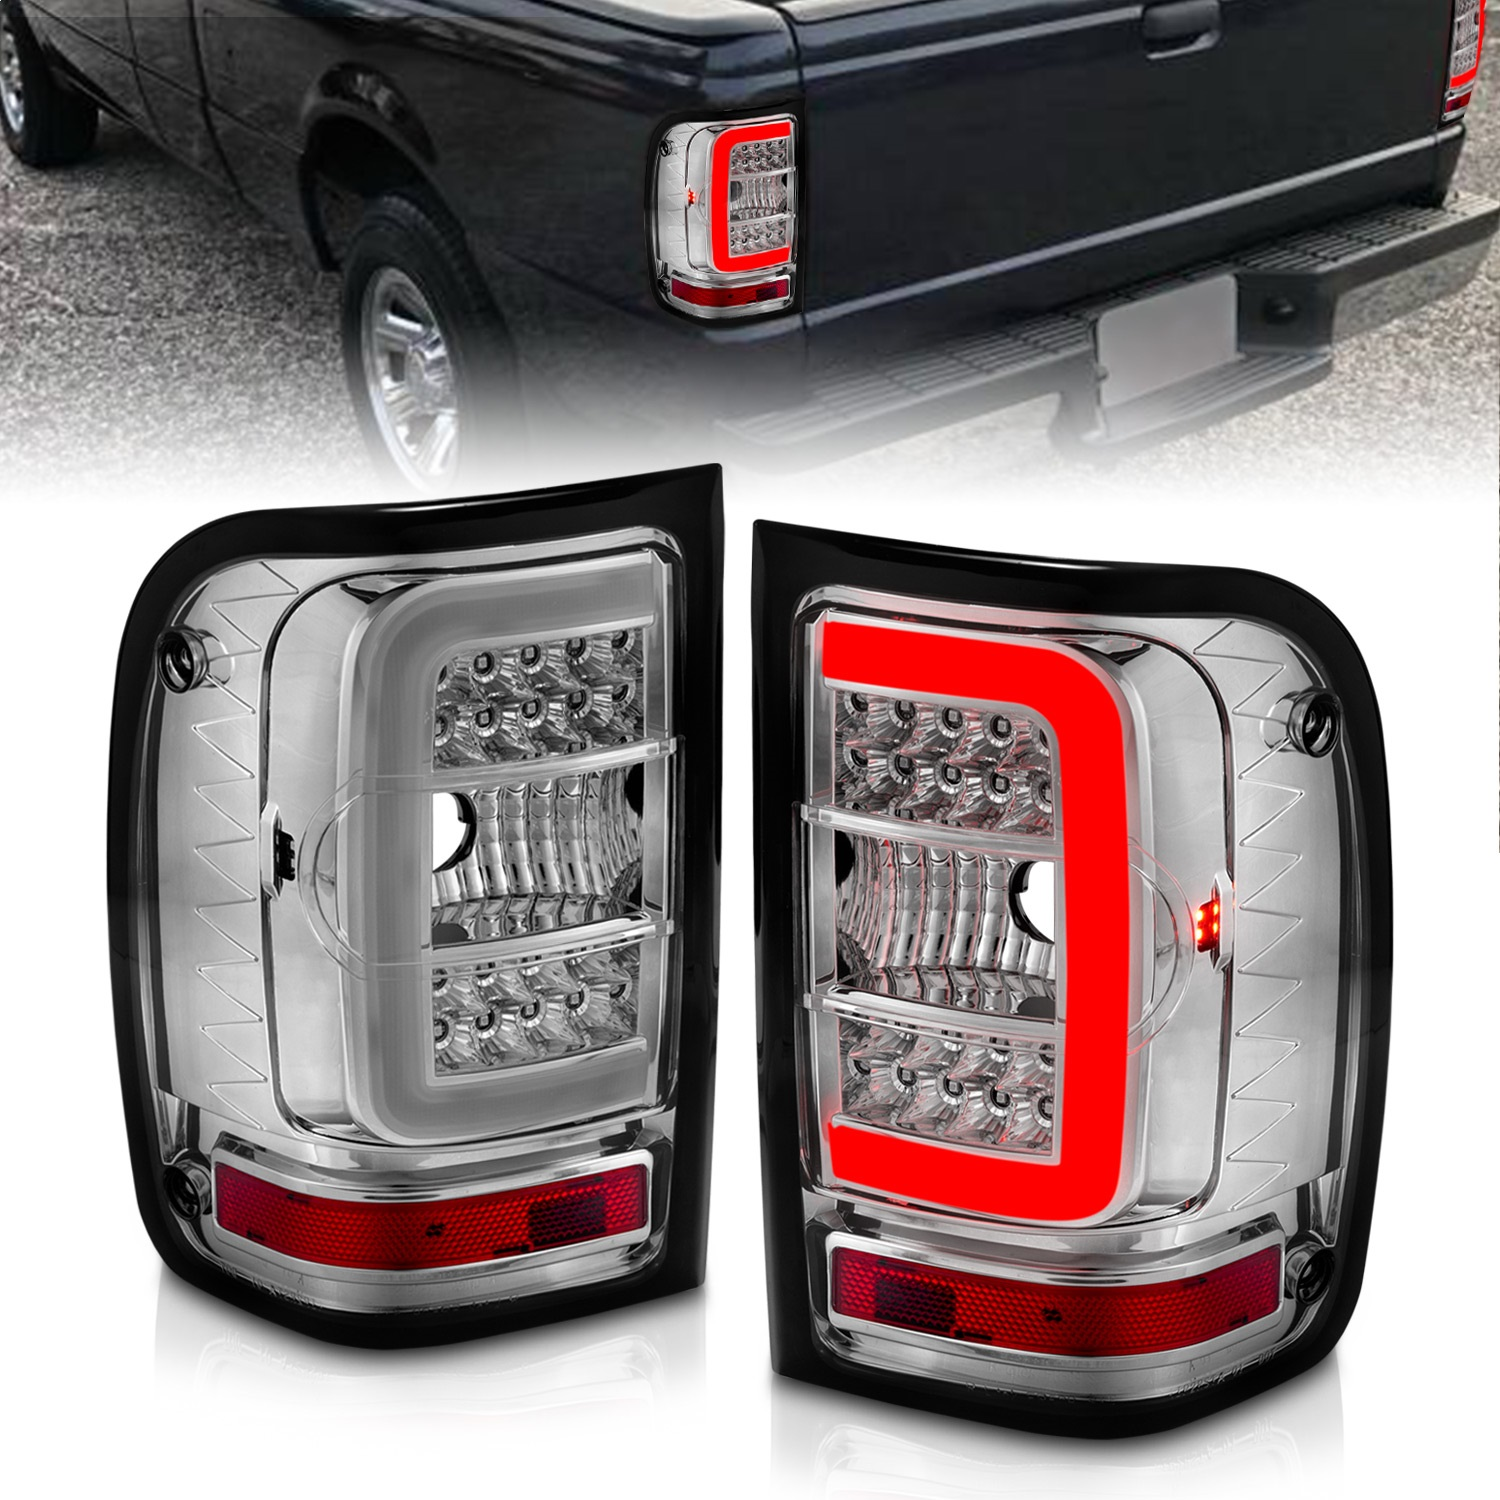 Anzo USA 311392 Tail Light Assembly Fits 01-11 Ranger